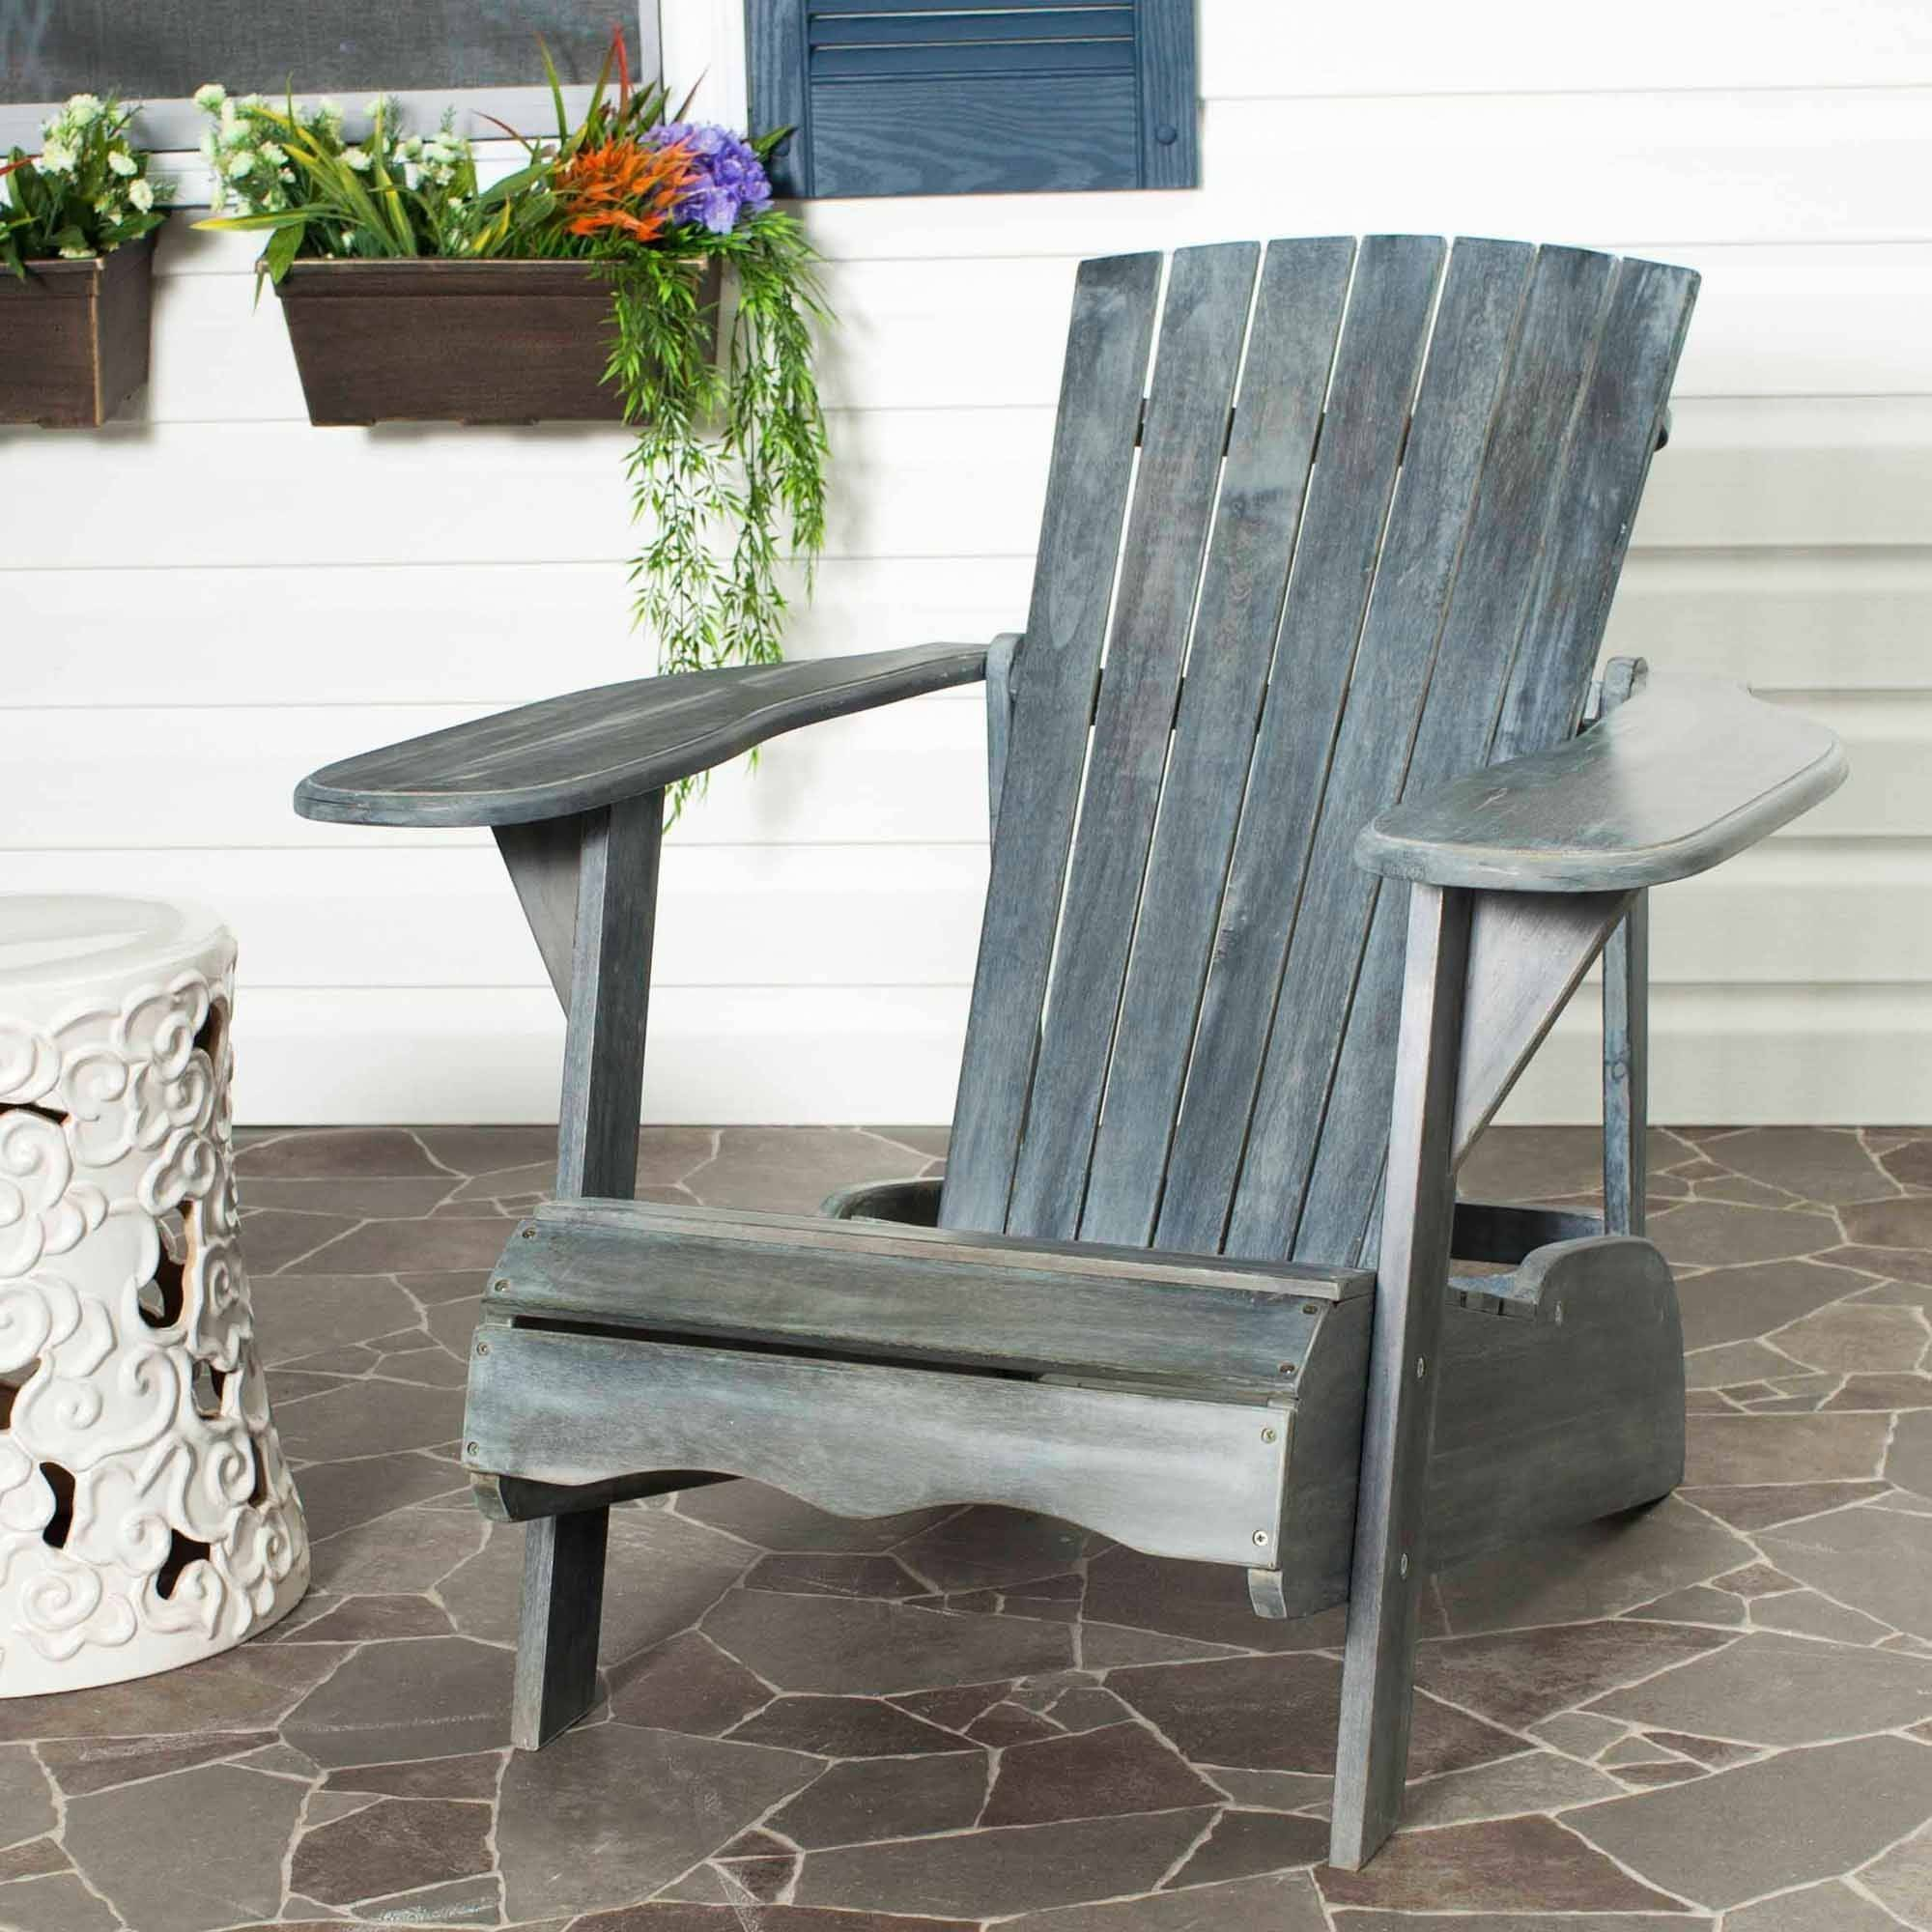 Safavieh Mopani Outdoor Adirondack Chair